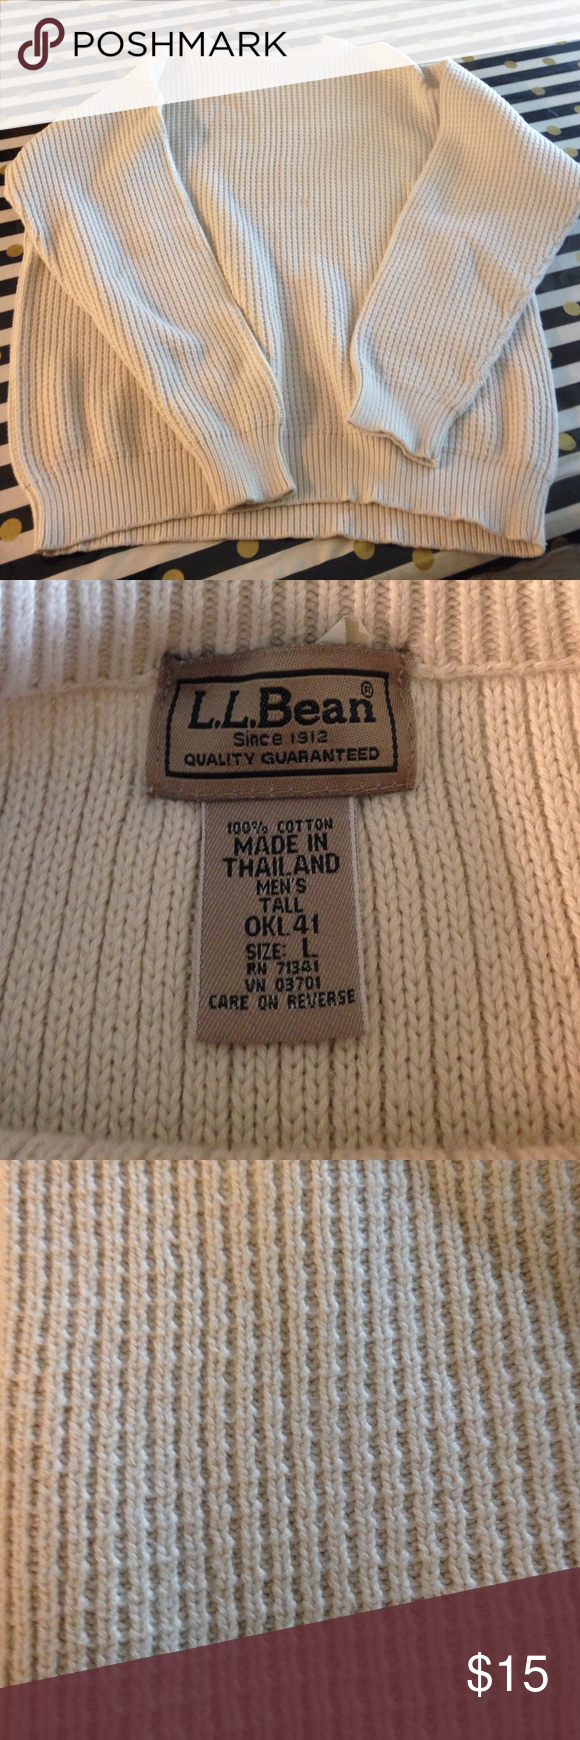 Men's LL Bean sweater Super Comfy and Thick! Excellent for outdoor gatherings! EUC same day shipping! LL Bean Sweaters Crewneck